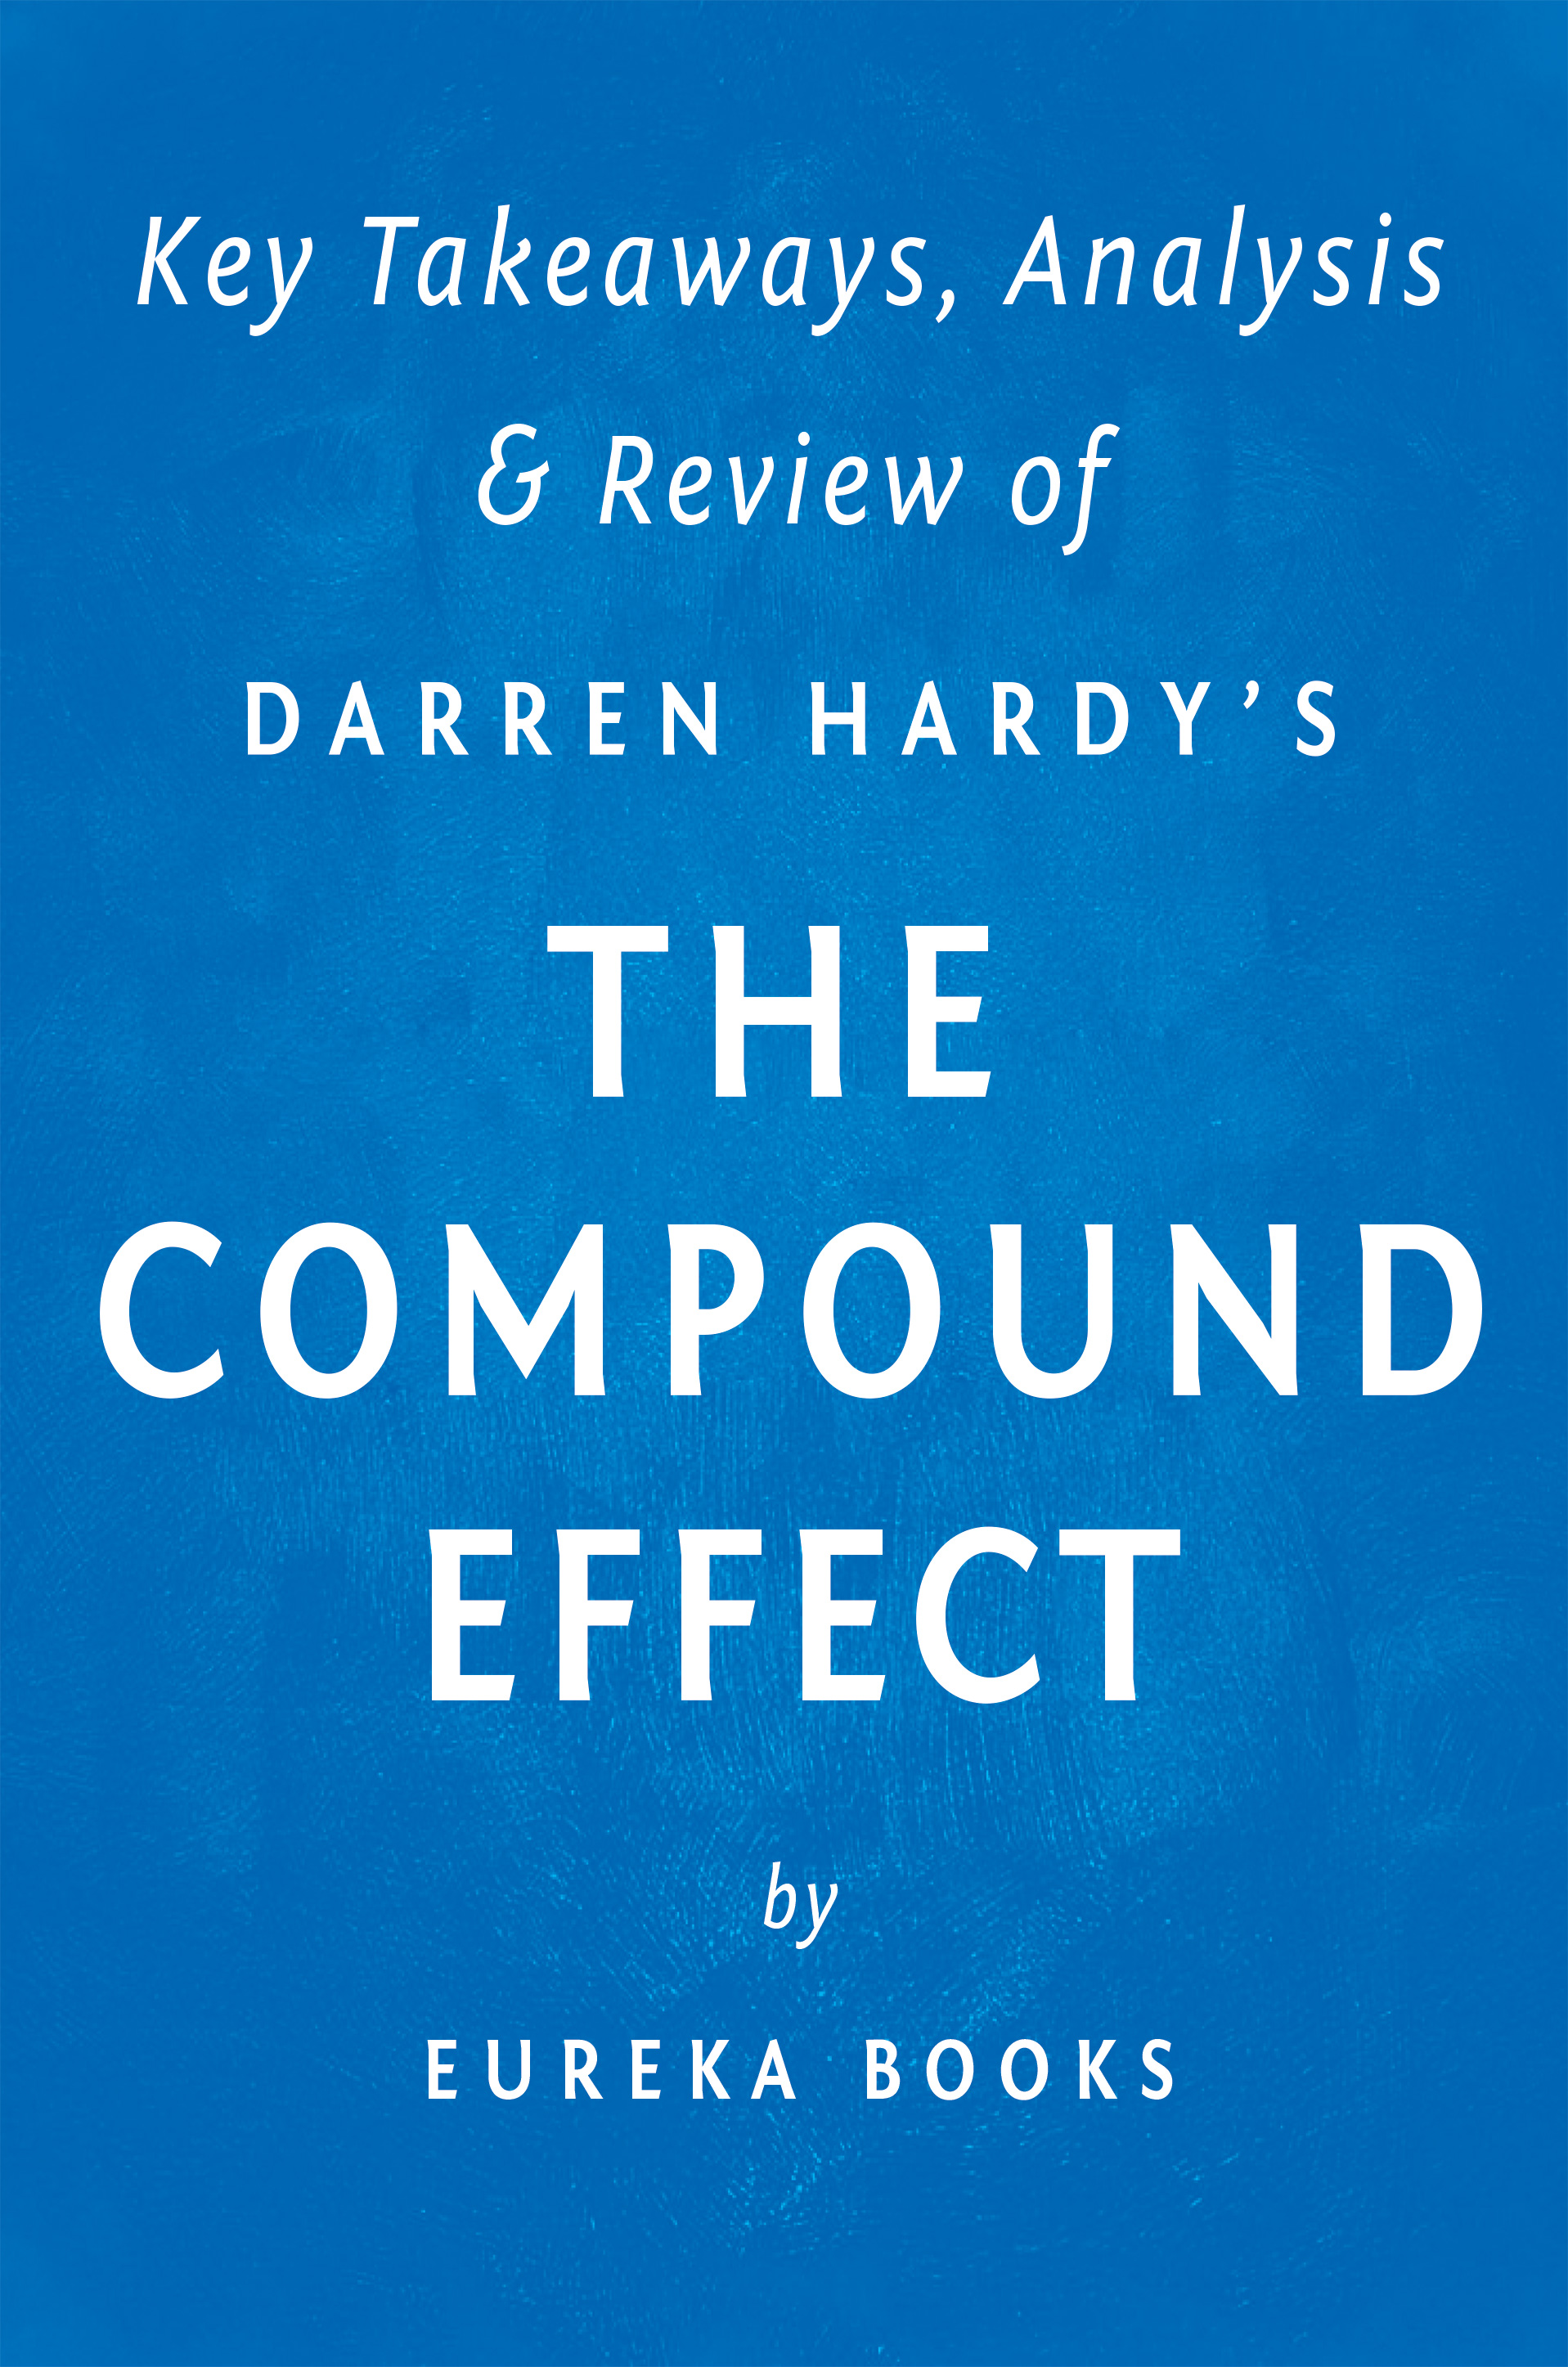 Download Ebook The Compound Effect: by Darren Hardy | Key Takeaways, Analysis & Review by Eureka Books Pdf